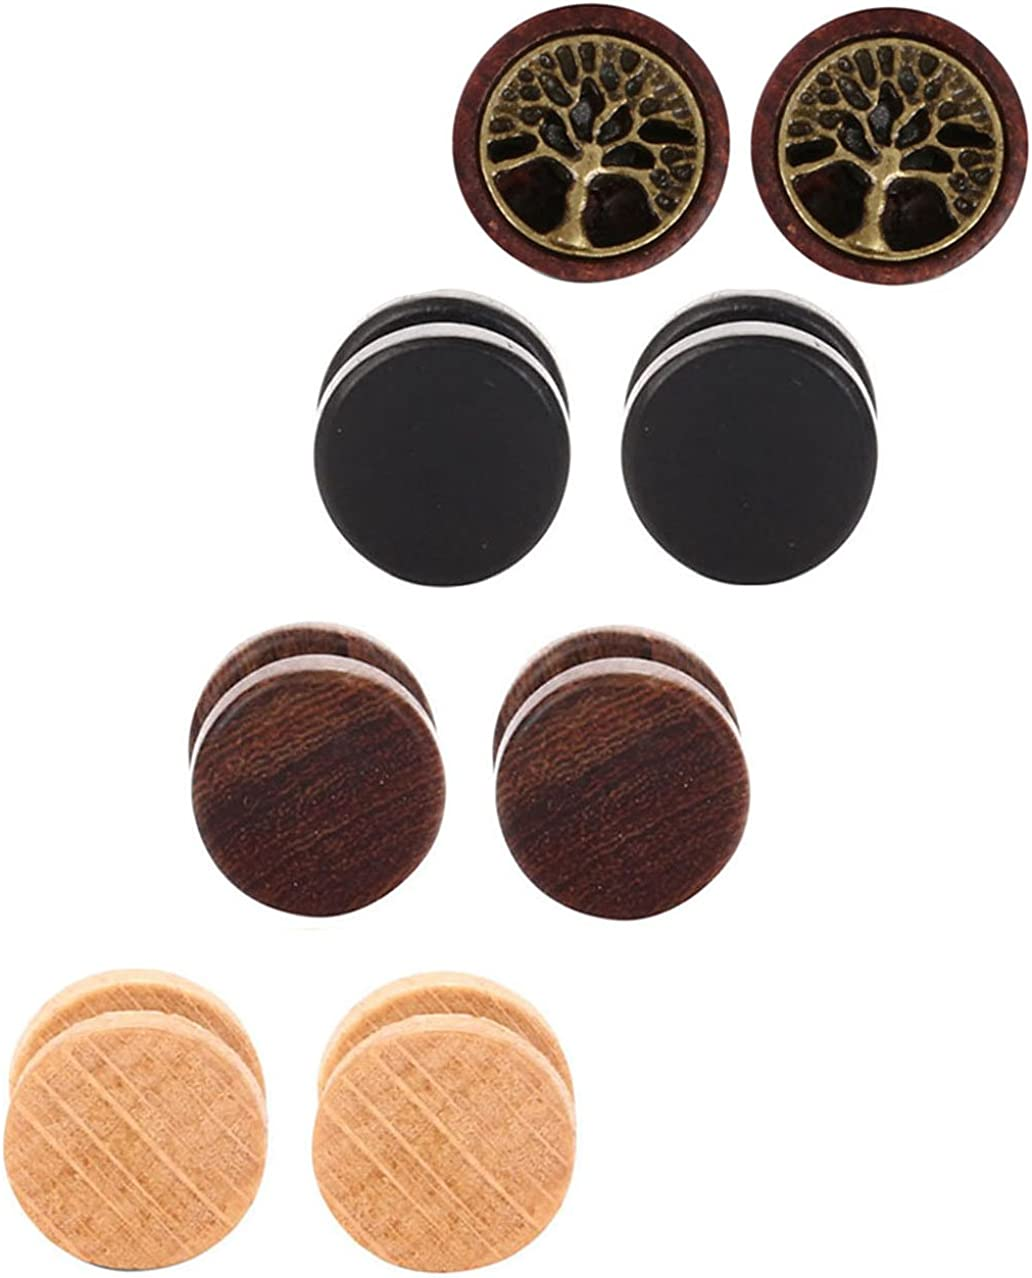 Tanyoyo Wood Cheater Fake Ear Plugs E Screw Special price for Popularity a limited time Gauges Illusion Stud